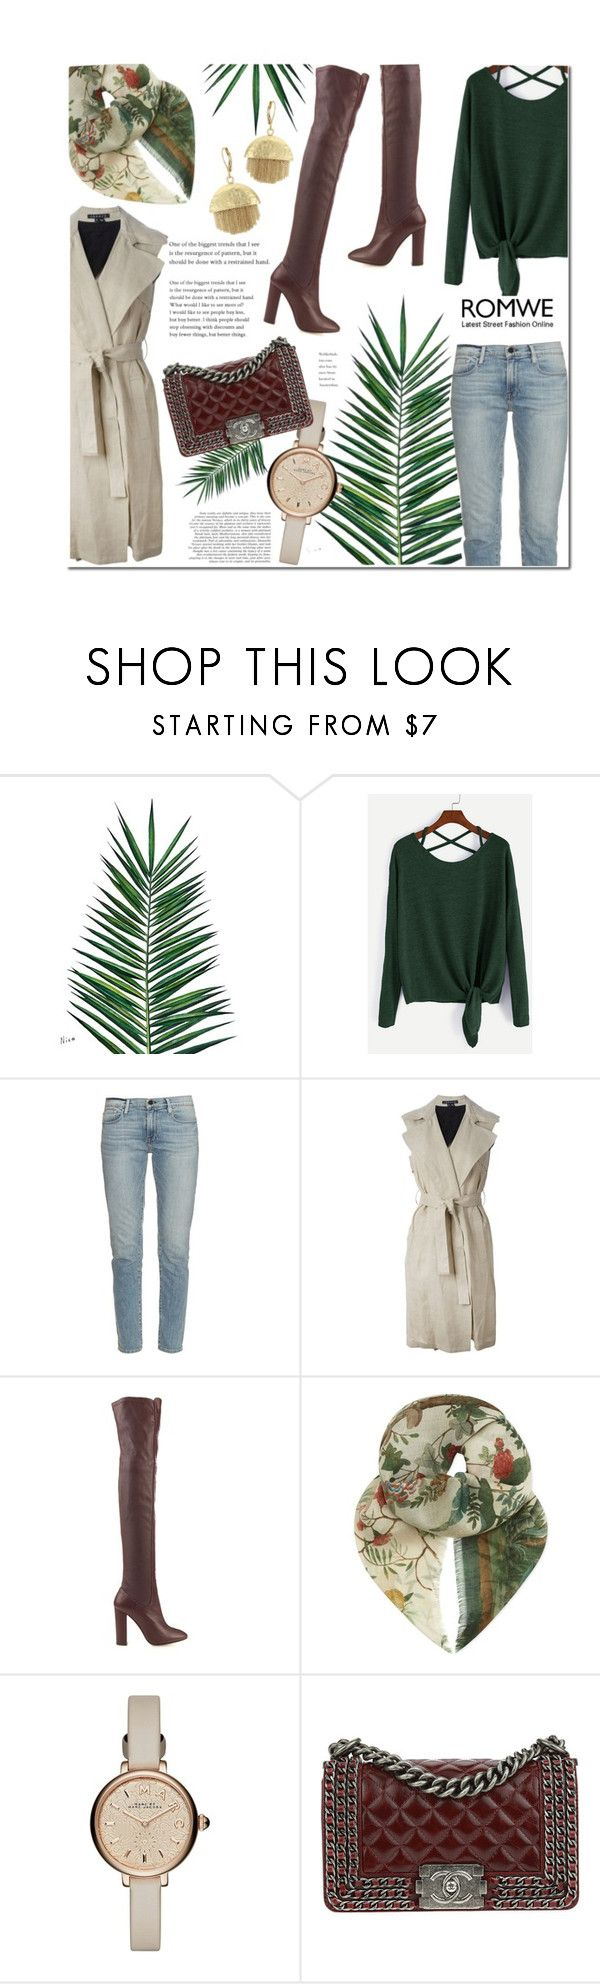 """ROMWE Contest #93"" by mfardilha ❤ liked on Polyvore featuring Nika, Frame, Theory, Aquazzura, Gucci, Marc by Marc Jacobs, Chanel and Vince Camuto"